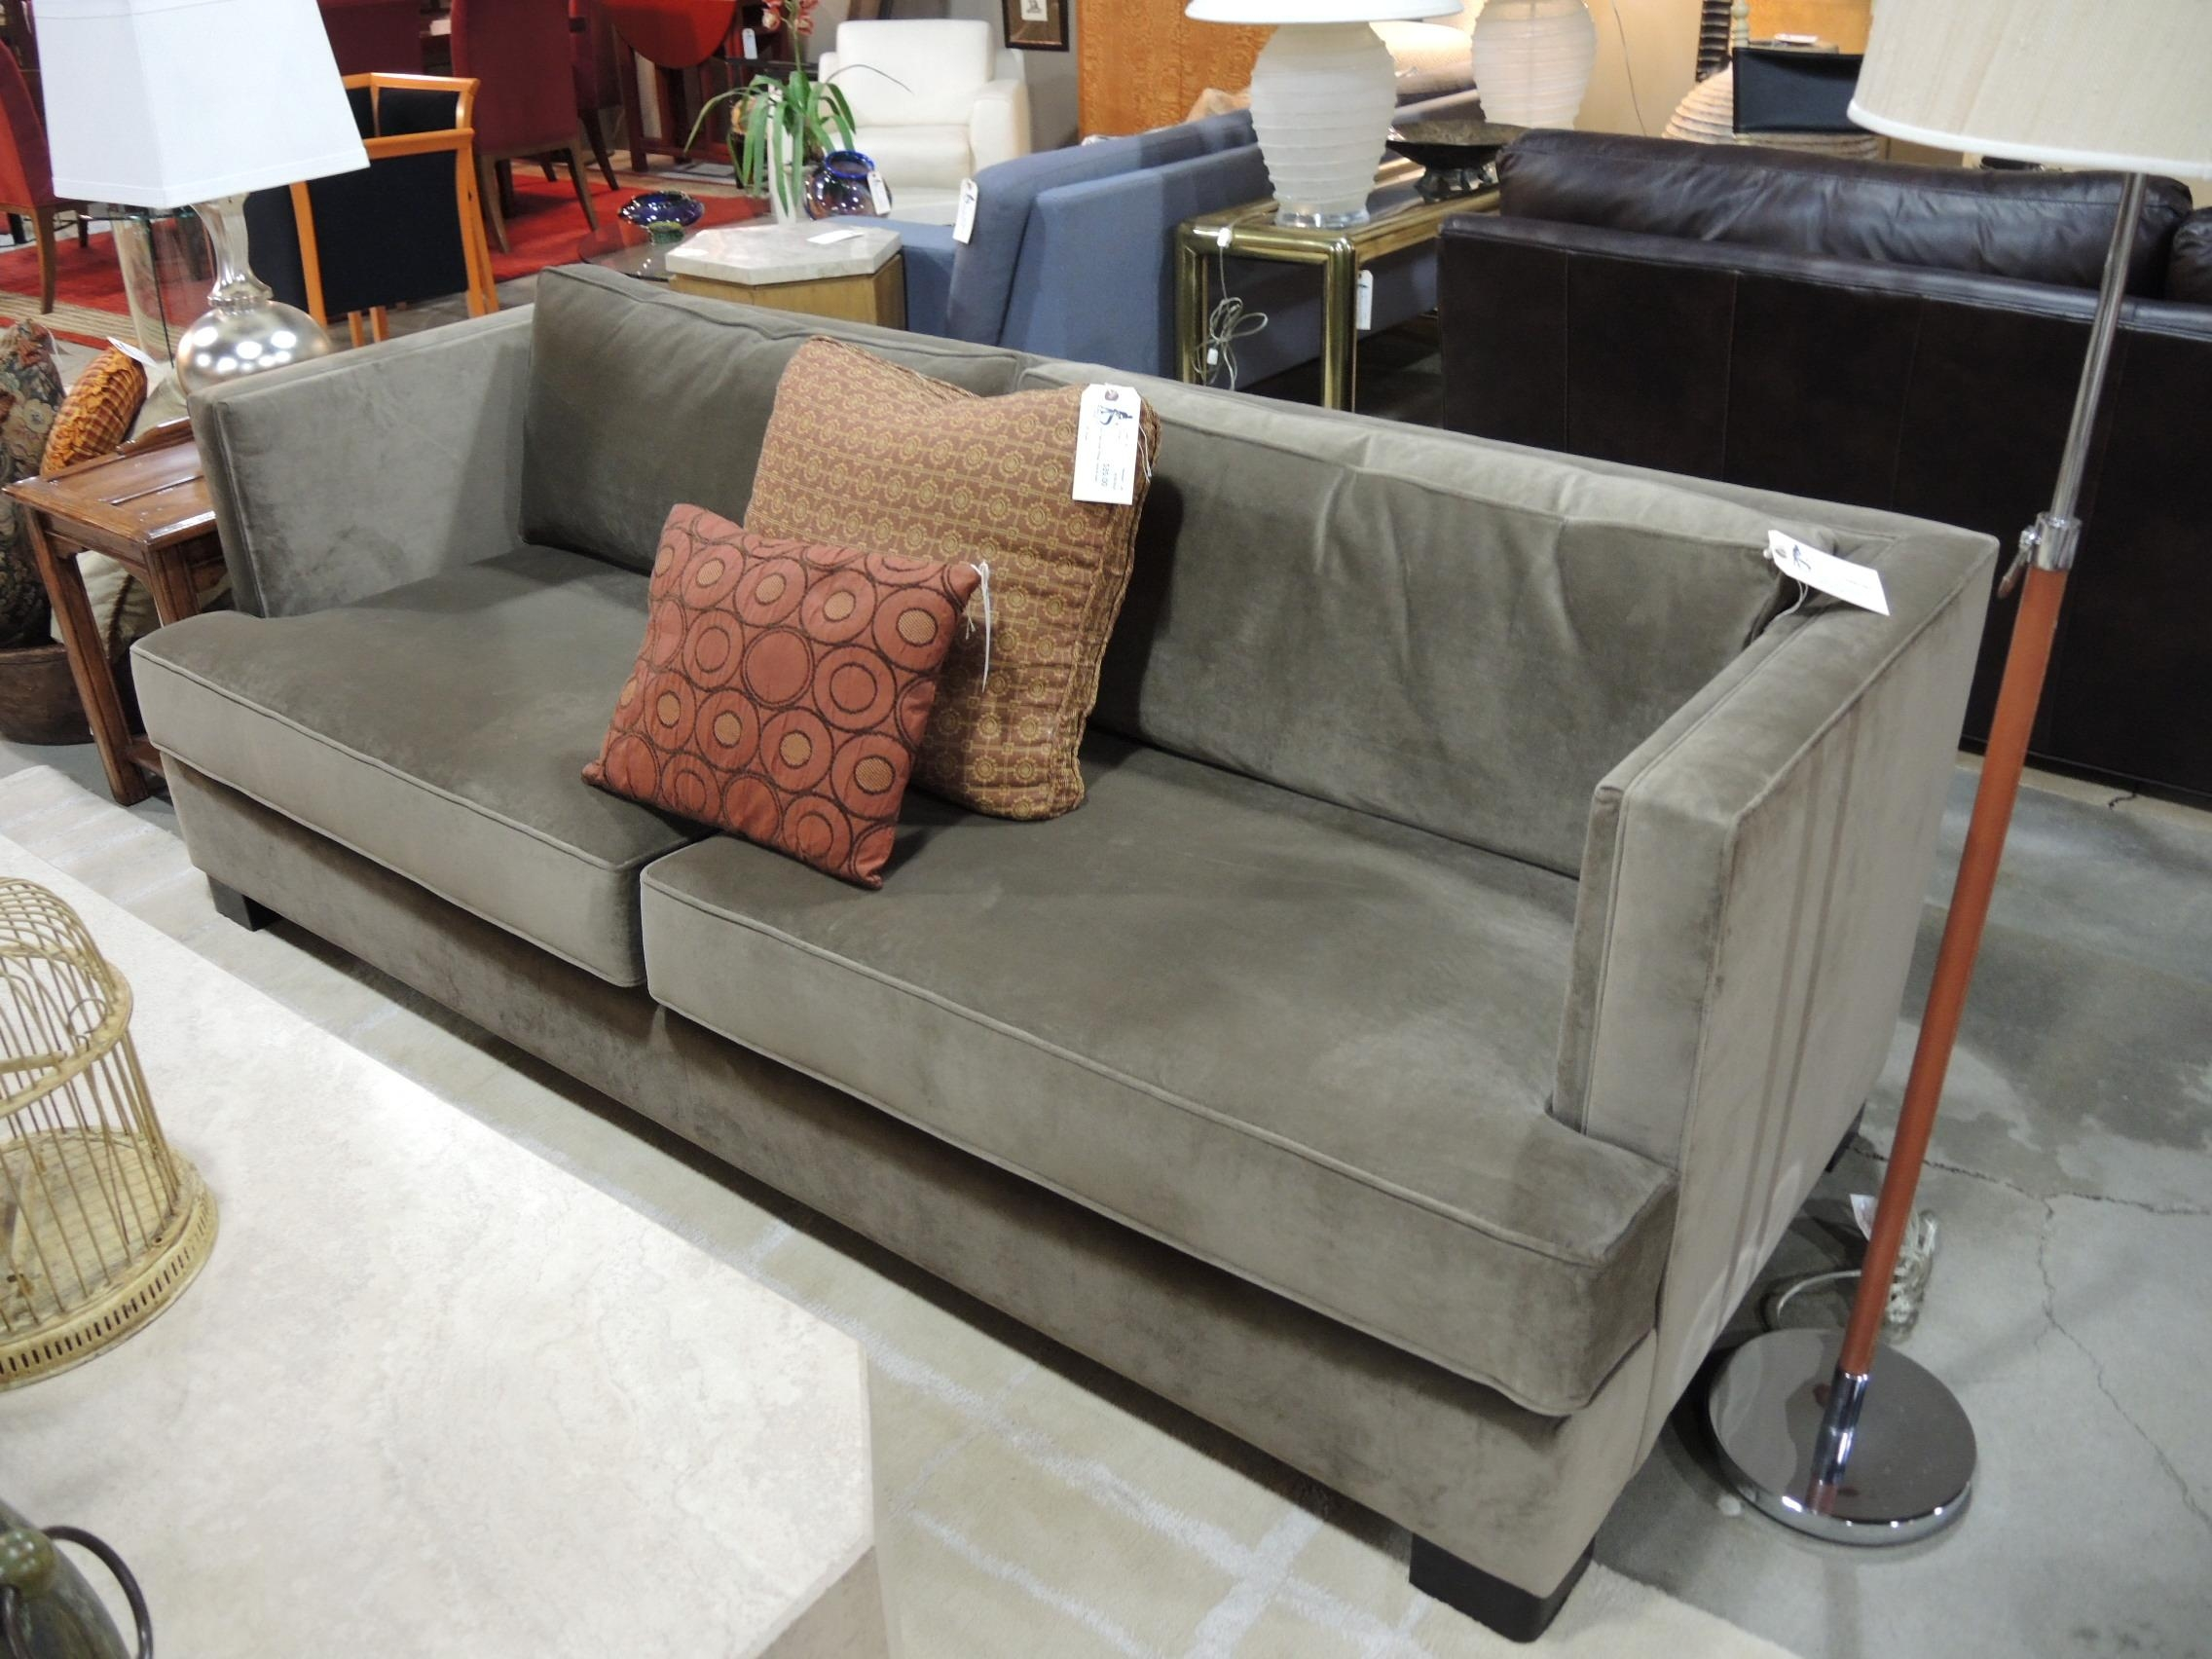 Latest Arrivals: Saturday, September 27Th– | Seams To Fit Home Regarding Deep Cushioned Sofas (Image 15 of 22)